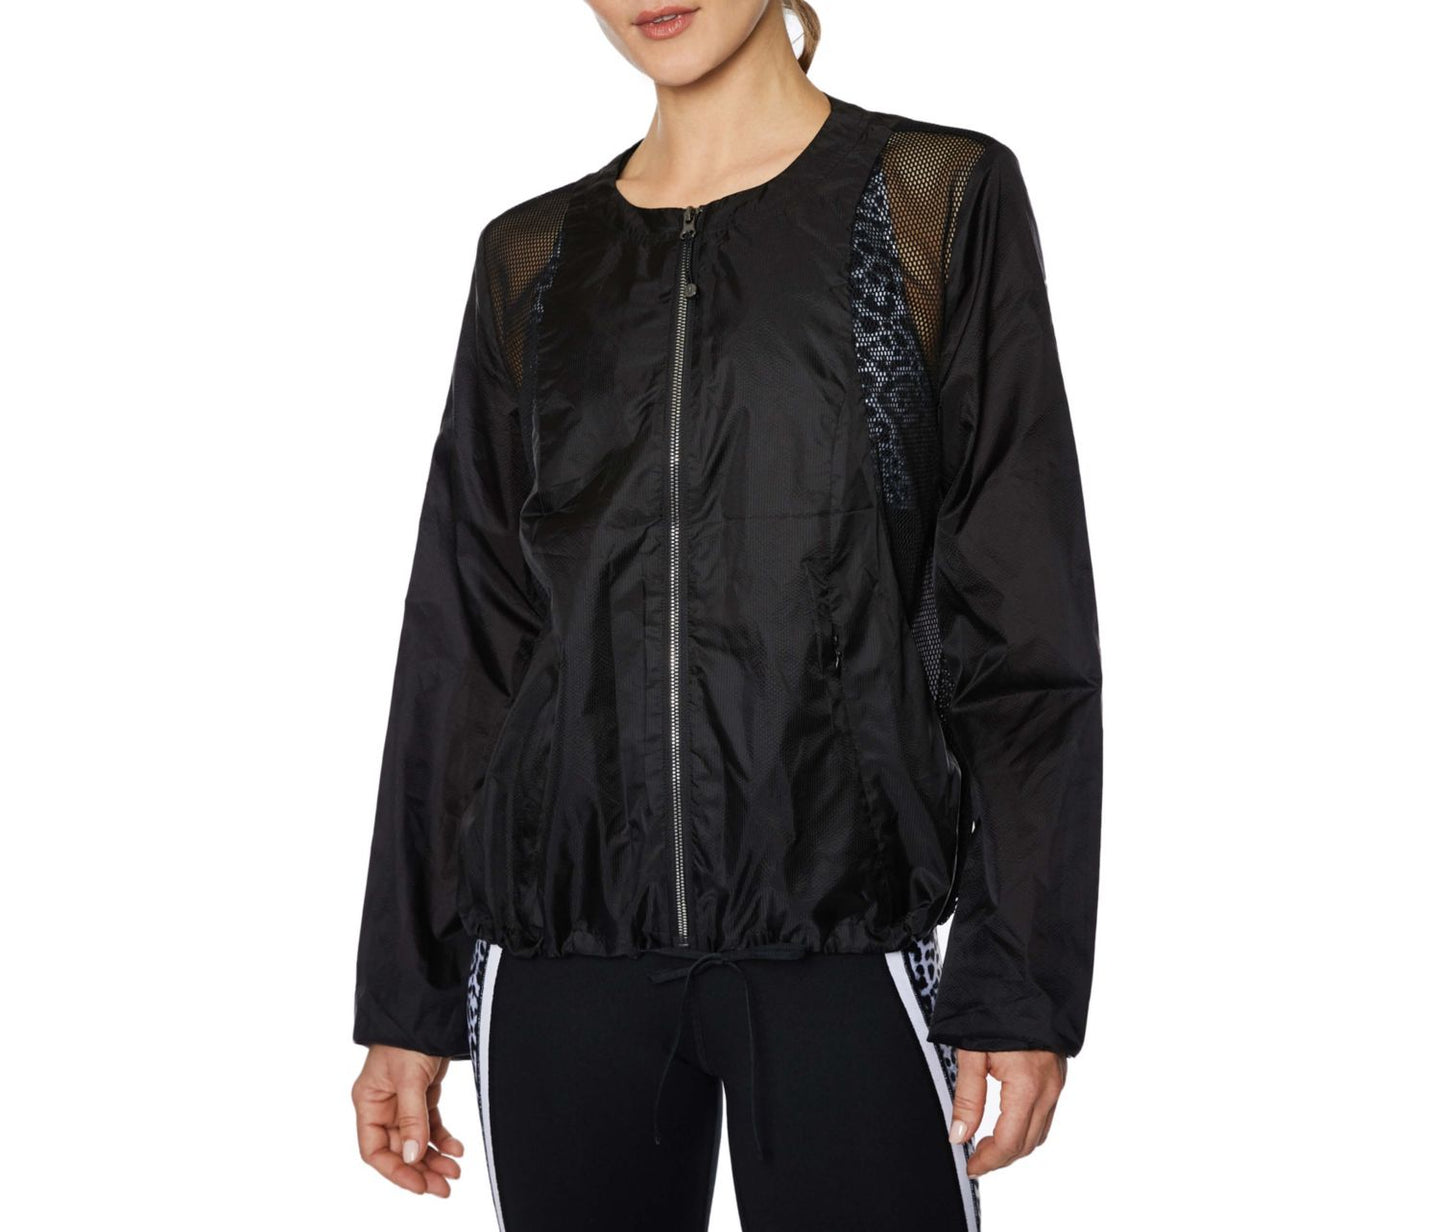 RIPSTOP MESH JACKET BLACK - APPAREL - Betsey Johnson